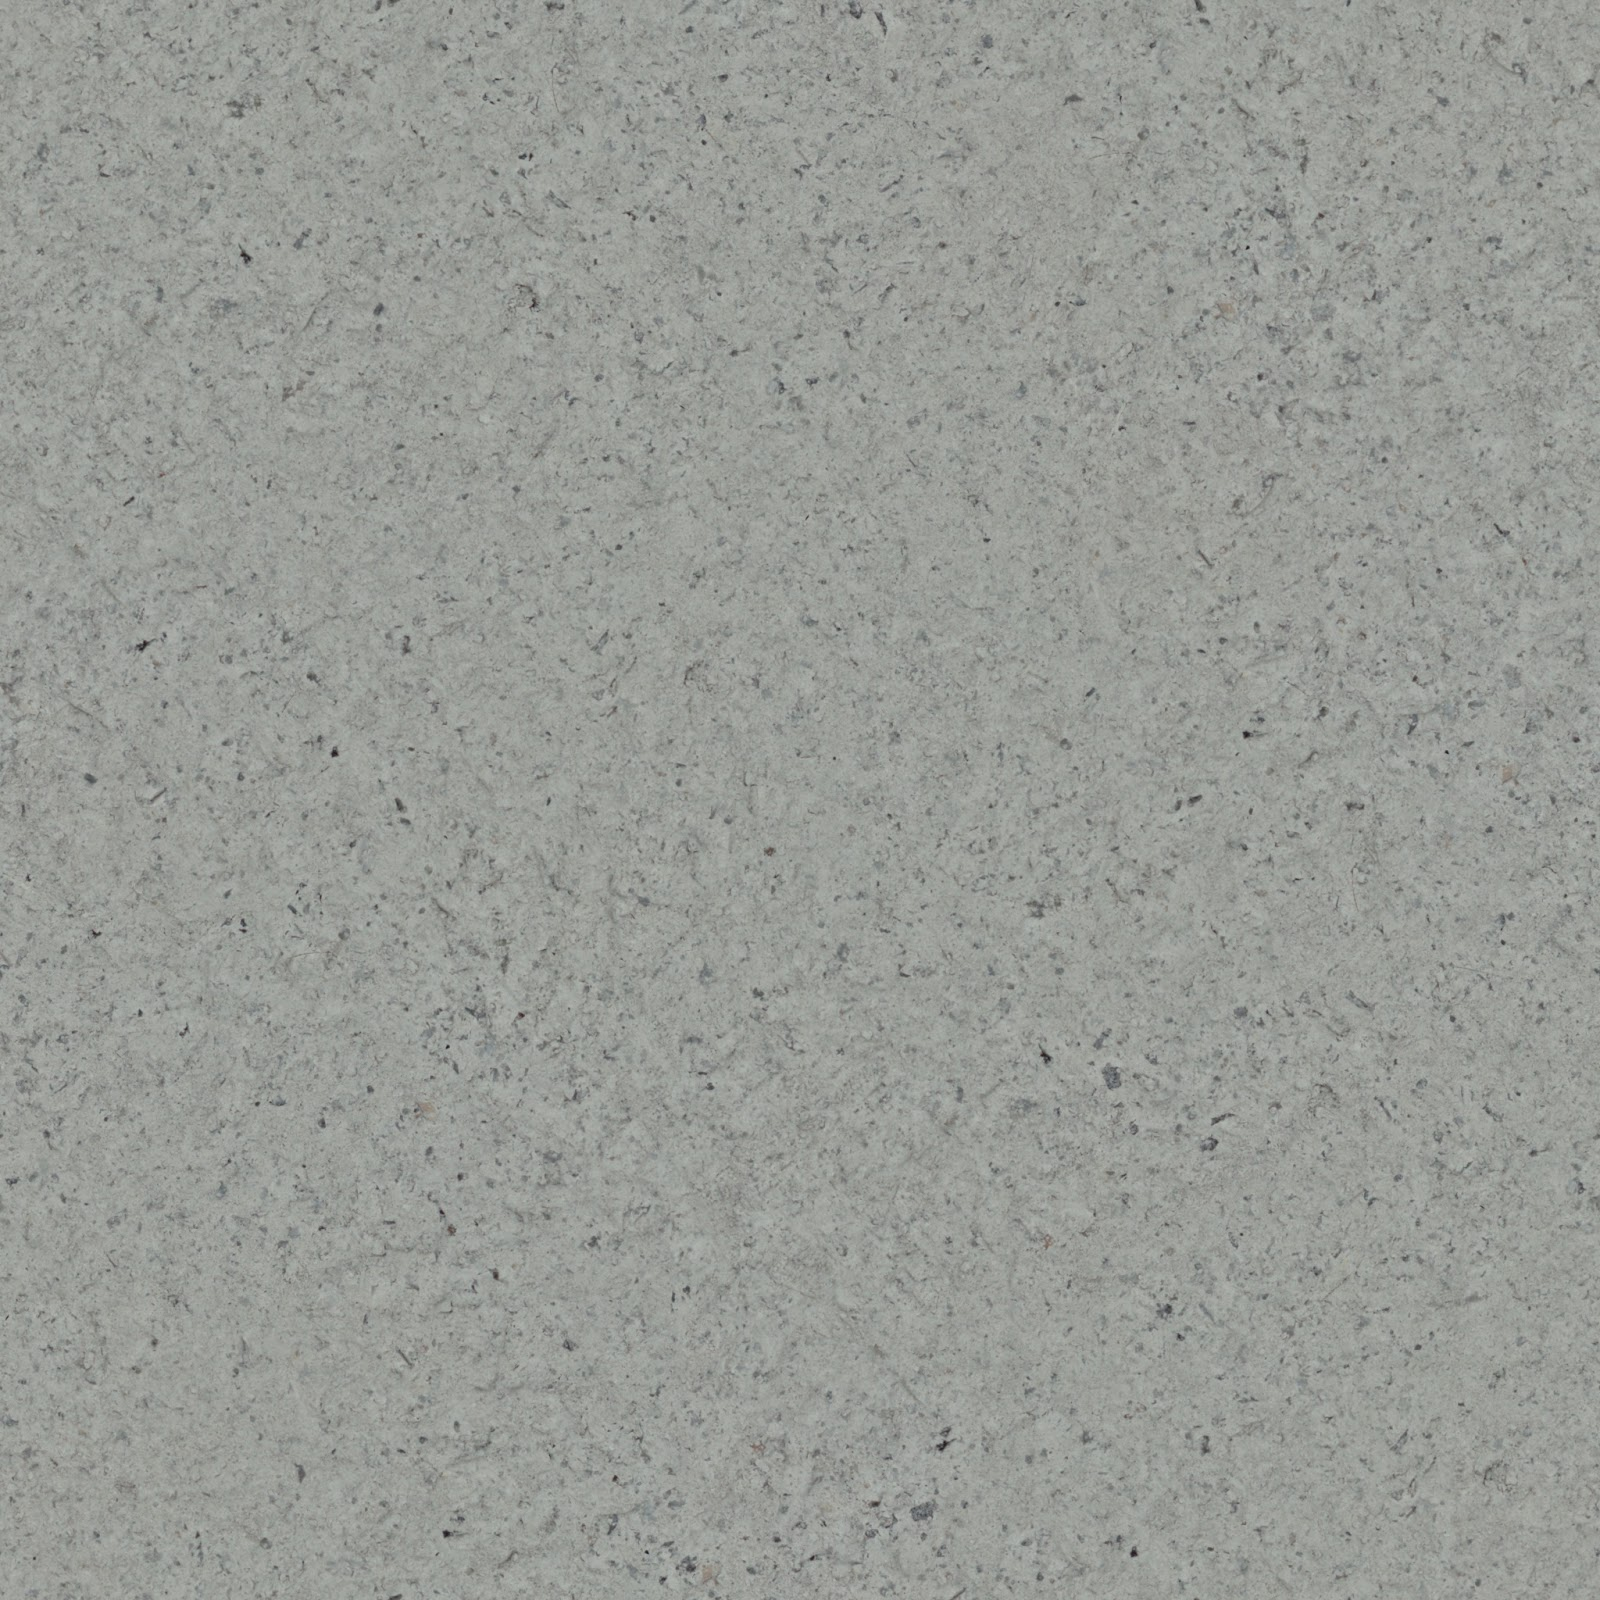 High Resolution Seamless Textures Ground Dusty Grey